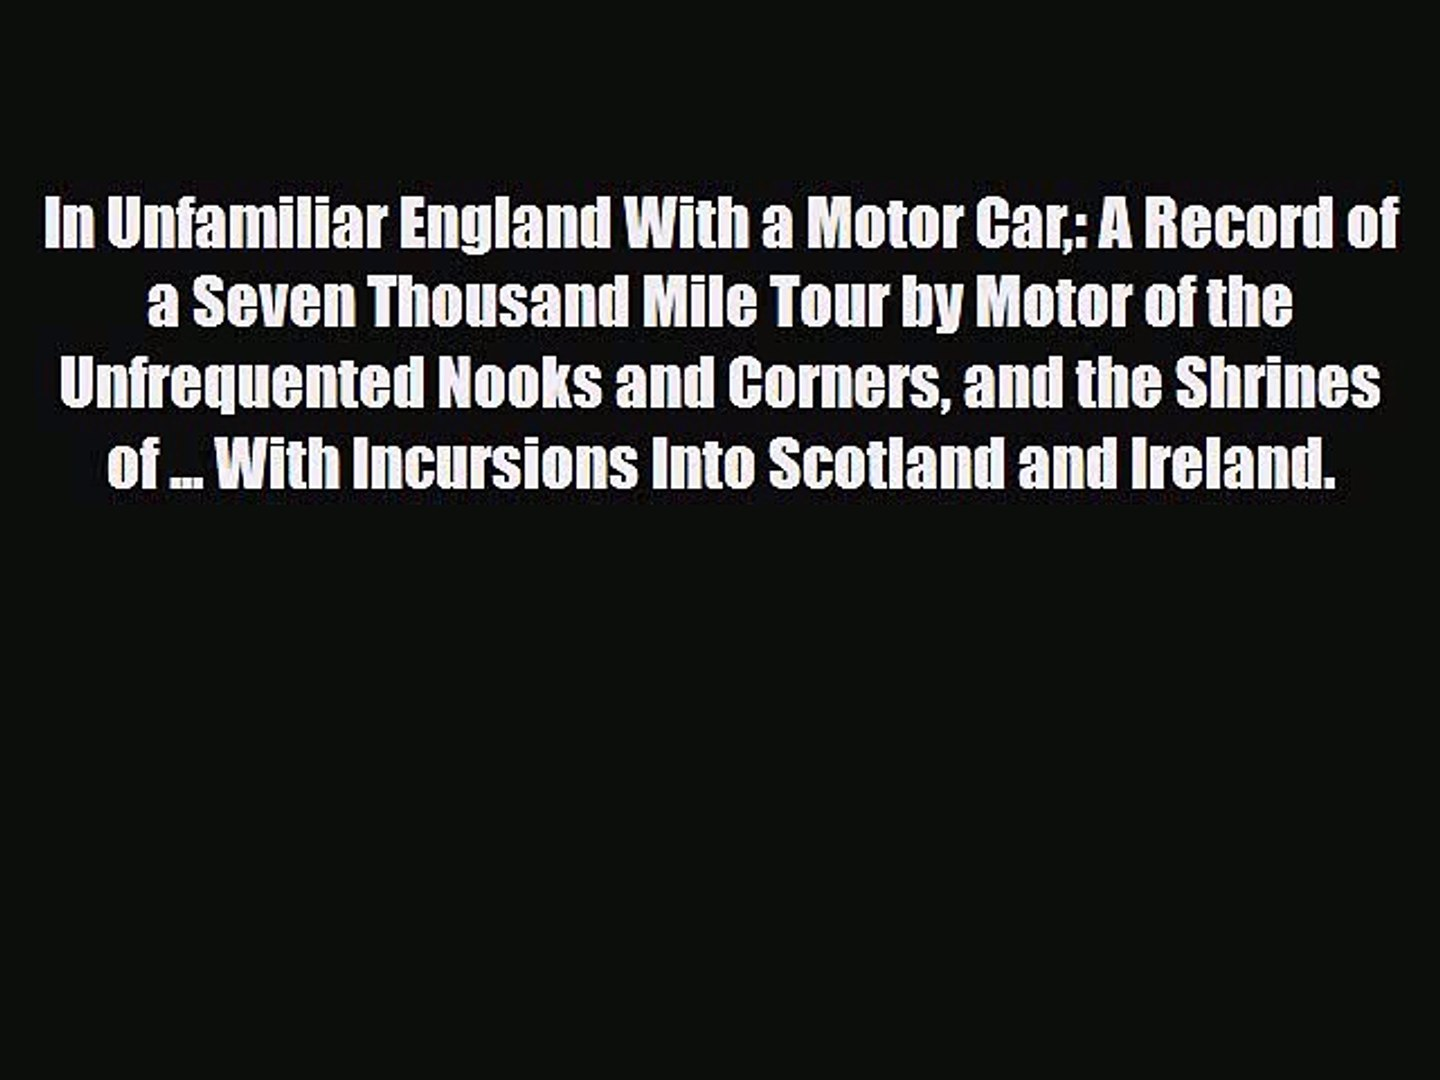 Read Books In Unfamiliar England With a Motor Car: A Record of a Seven Thousand Mile Tour by